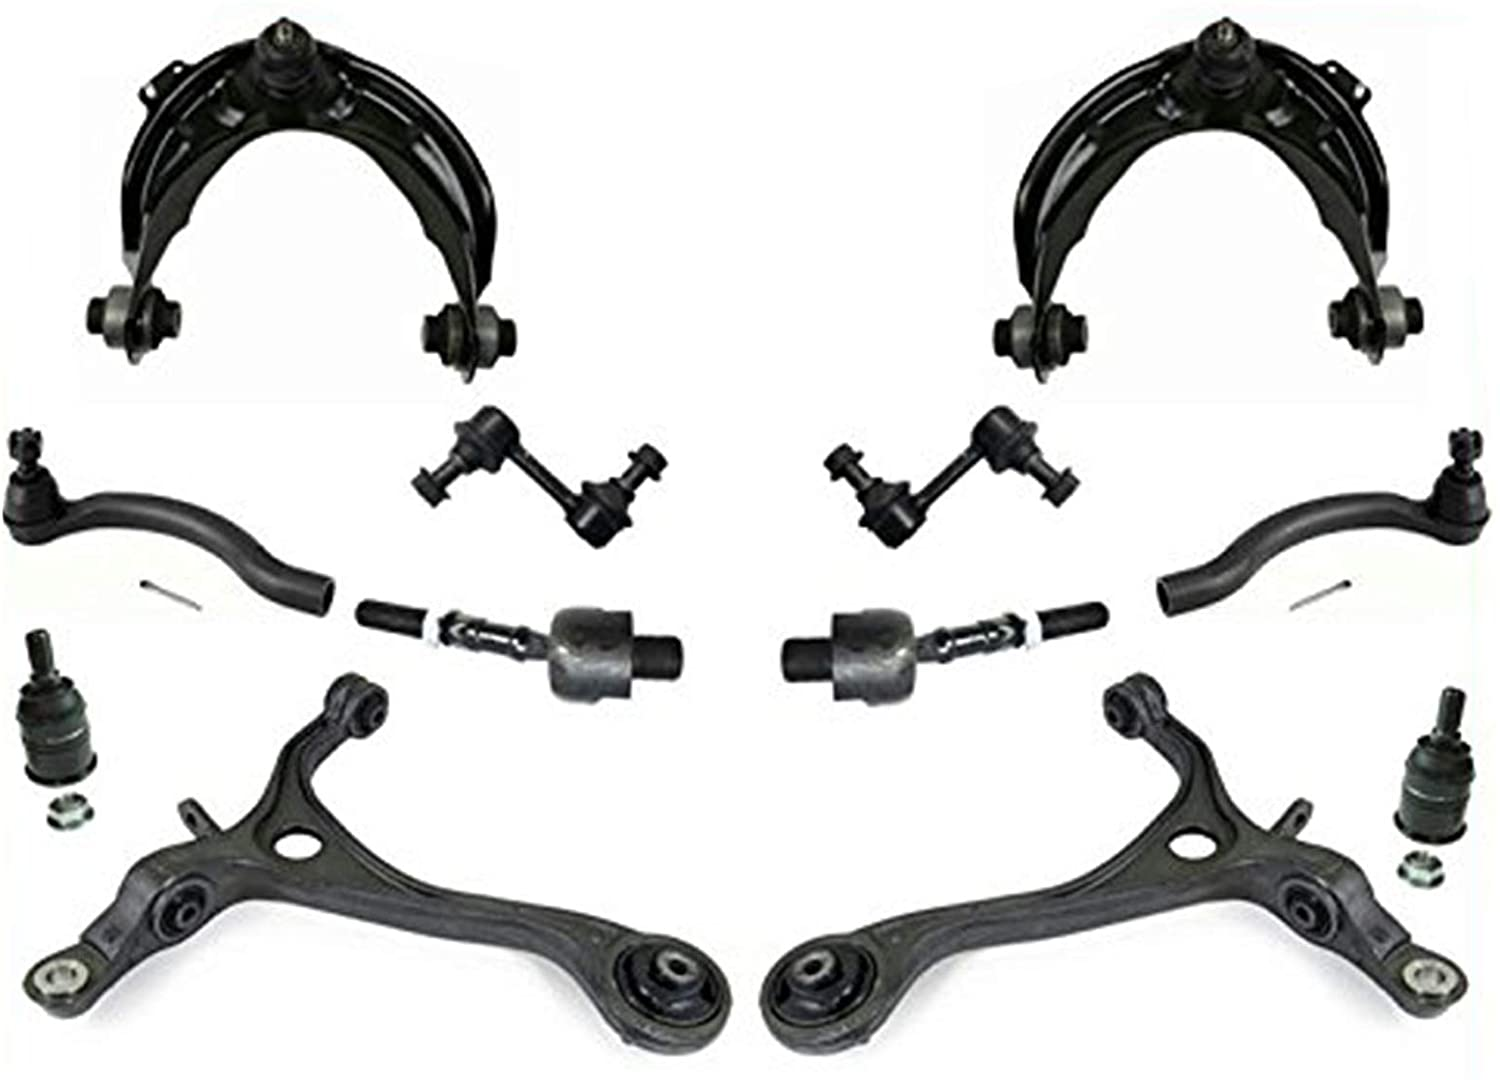 Front Steering Chassis 12pc Kit Fits For Acura TL 04-06